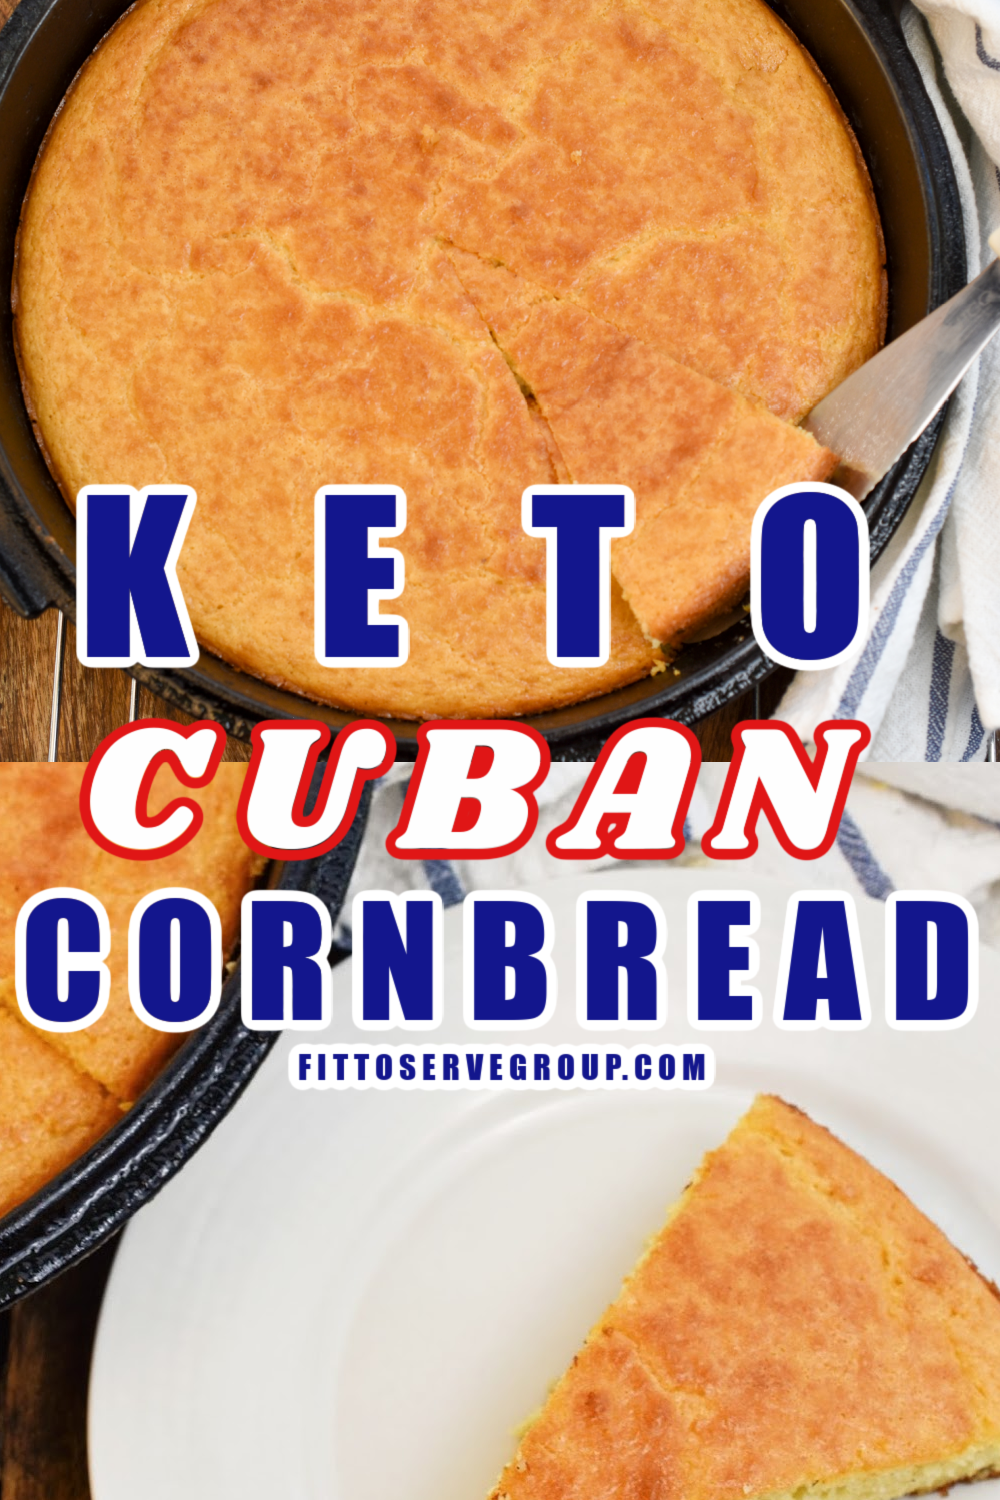 Keto Cuban Cornbread baked in a cast-iron skillet and served on a small white plate